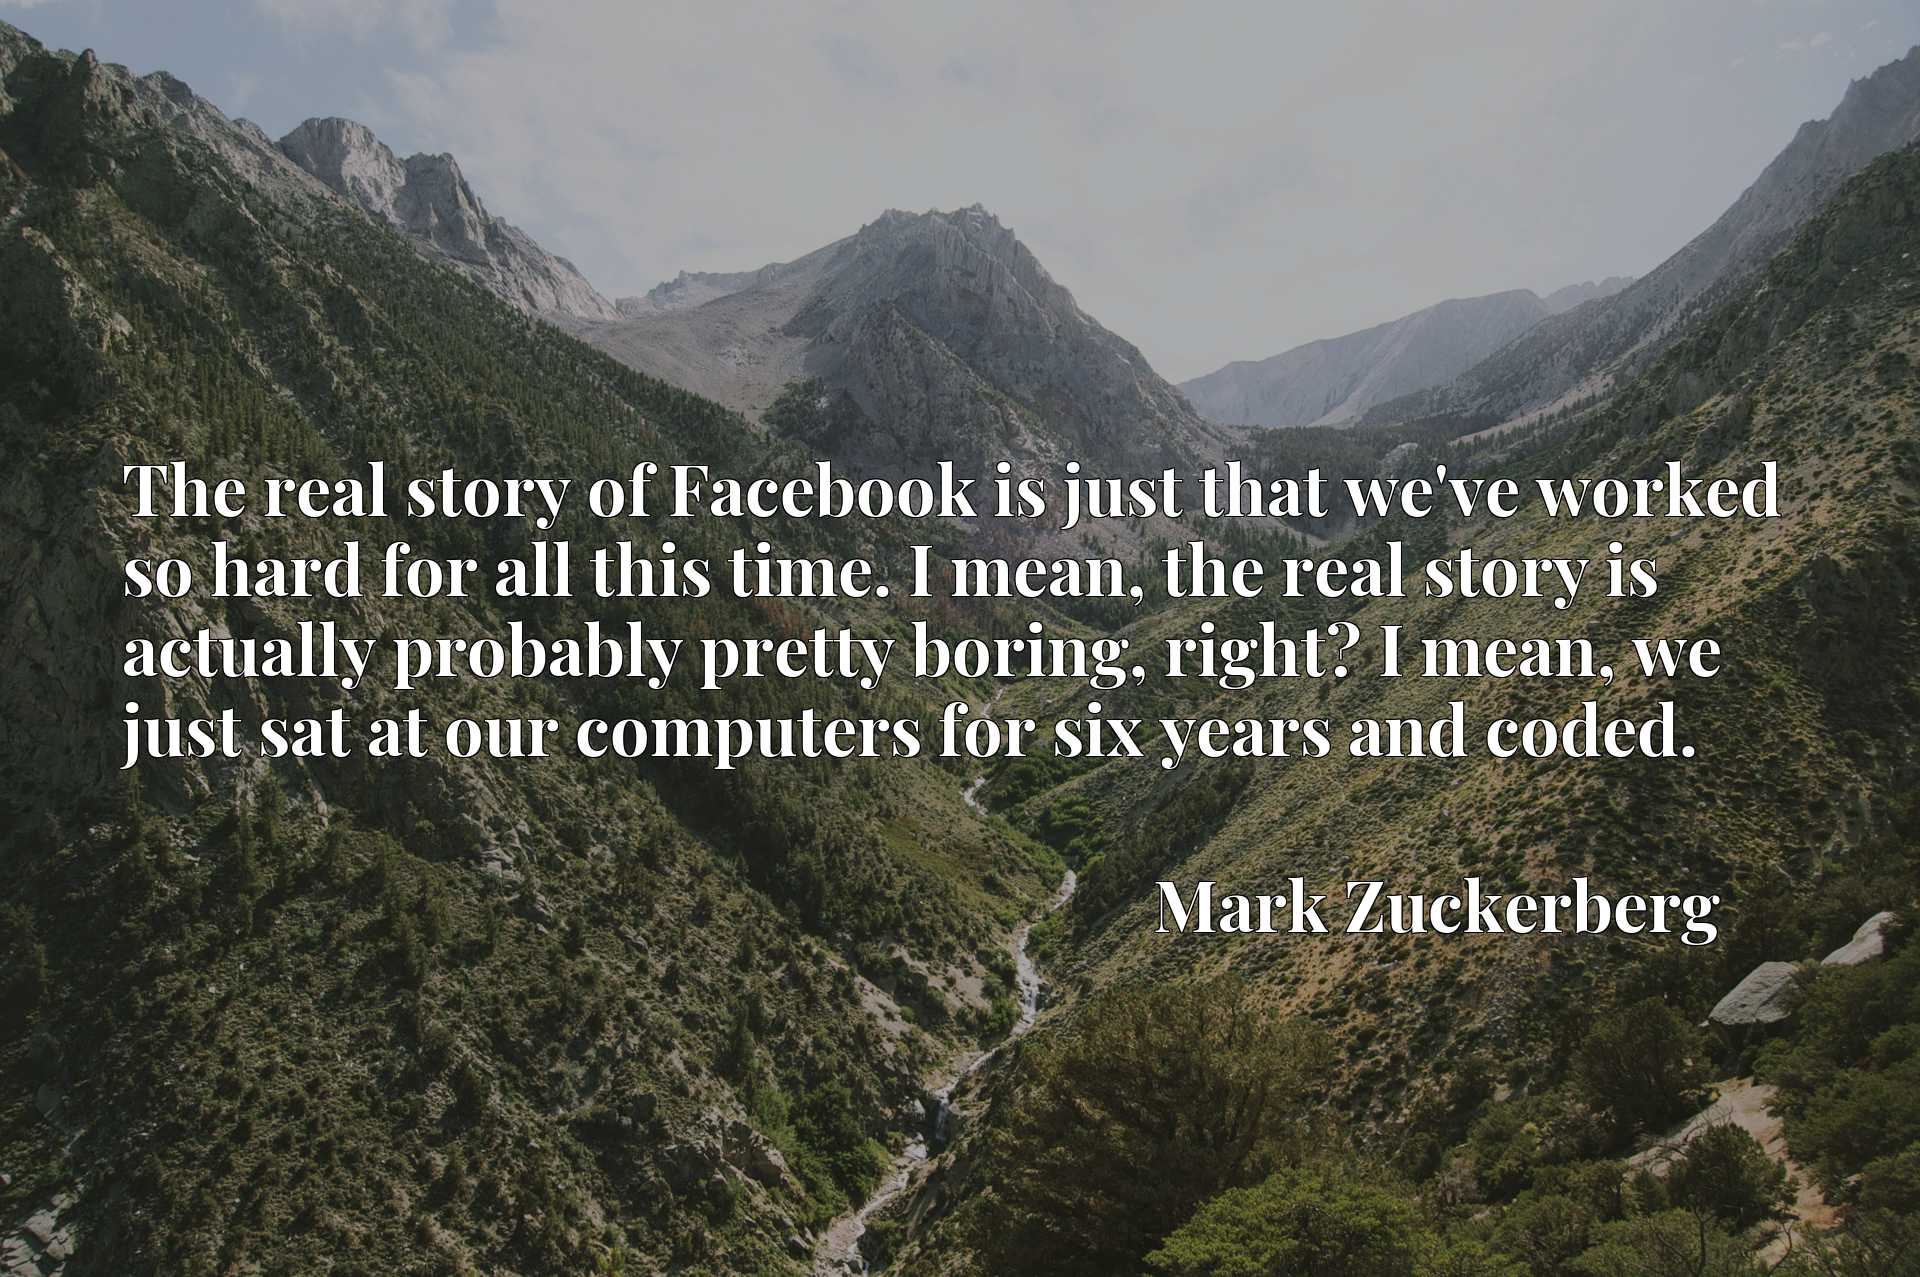 The real story of Facebook is just that we've worked so hard for all this time. I mean, the real story is actually probably pretty boring, right? I mean, we just sat at our computers for six years and coded.